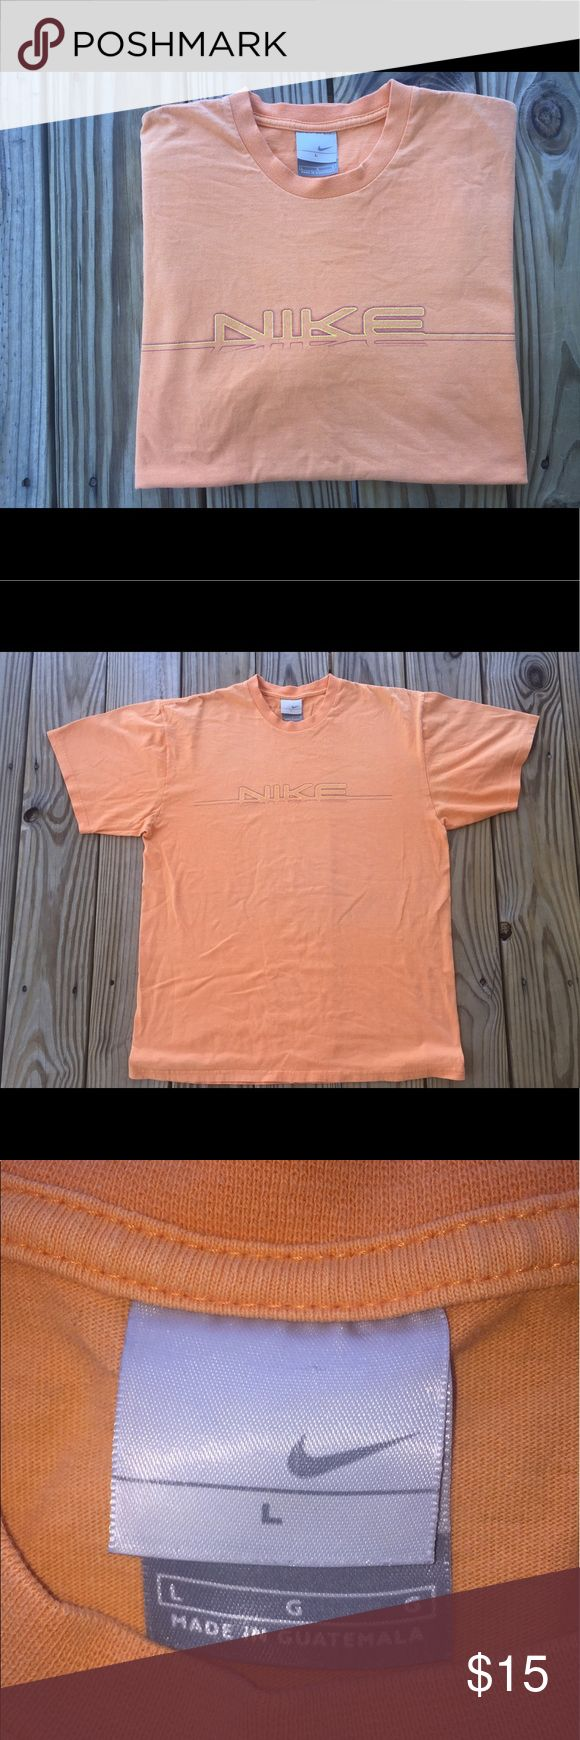 Vintage Nike Gray Tag Mango Tshirt In great condition from a smoke and pet free home Nike Shirts Tees - Short Sleeve